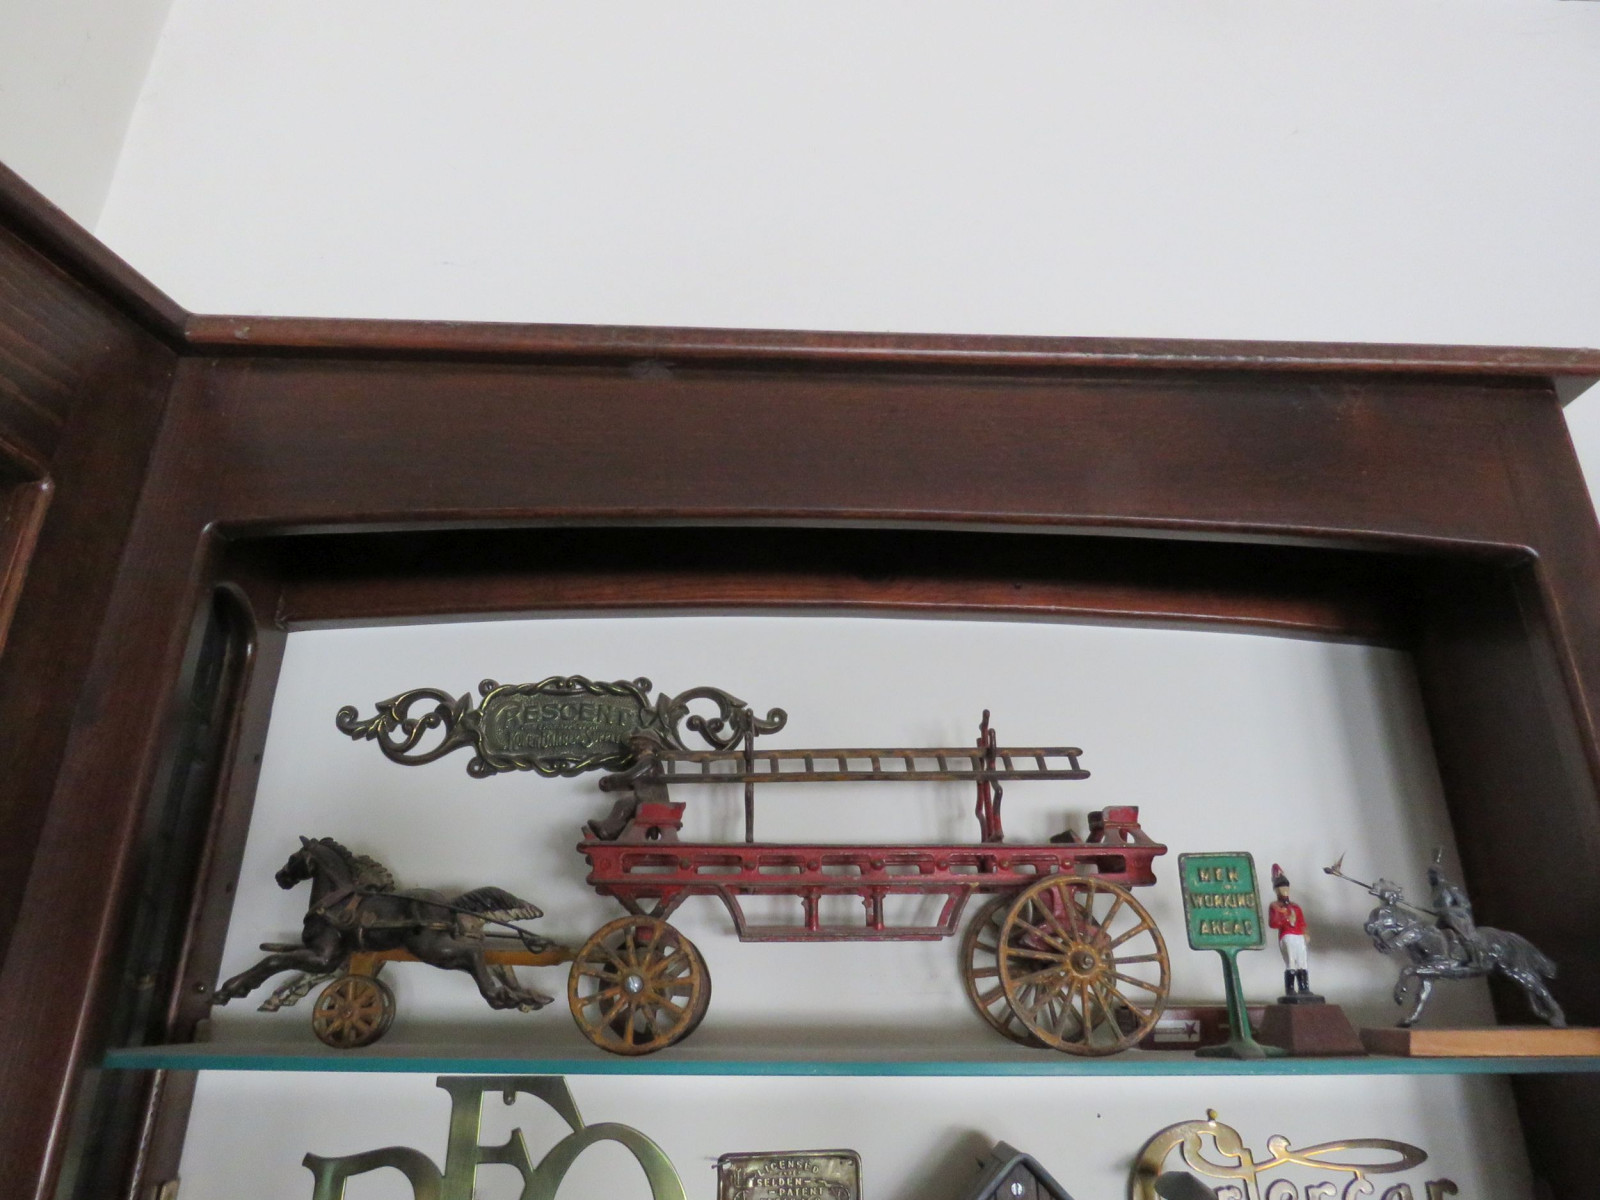 Kenton Cast Iron Horse Drawn Ladder Wagon - Image 1